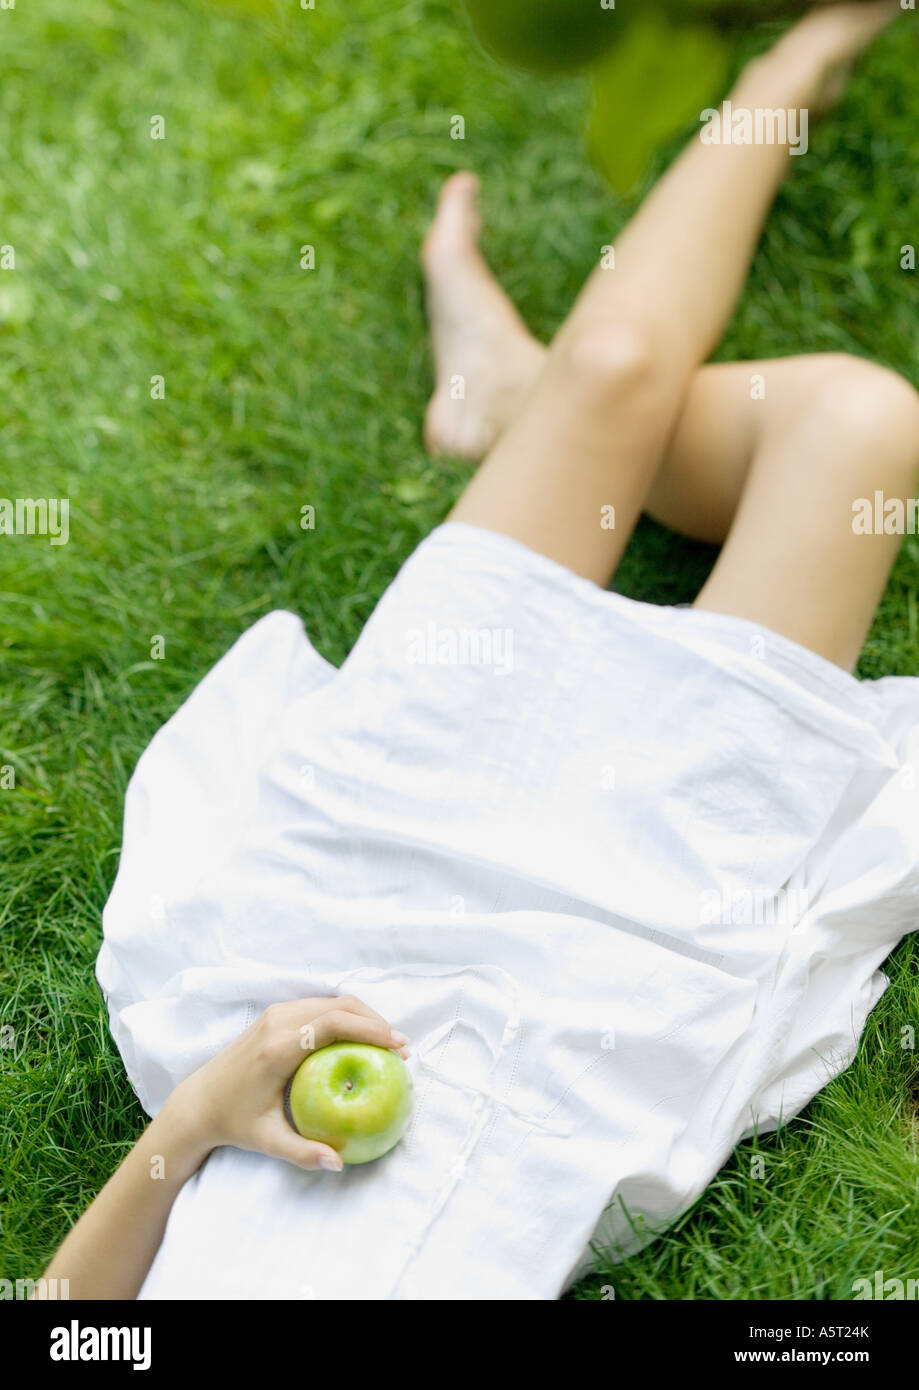 Woman lying in grass, holding apple, low section Photo Stock